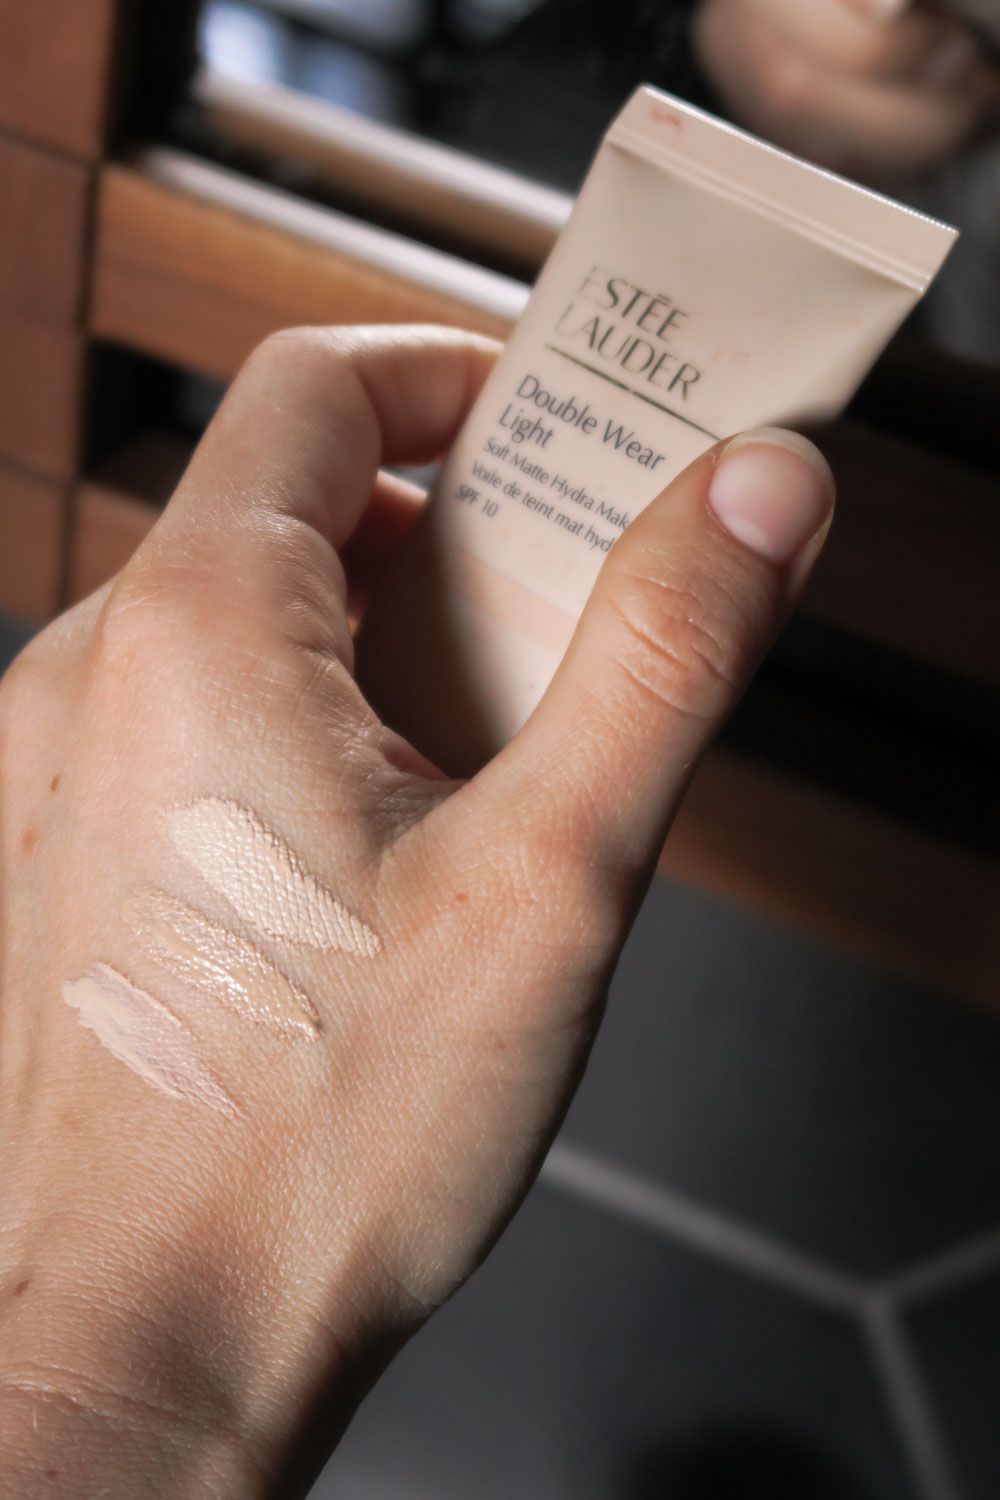 Make UP Foundation Swatches